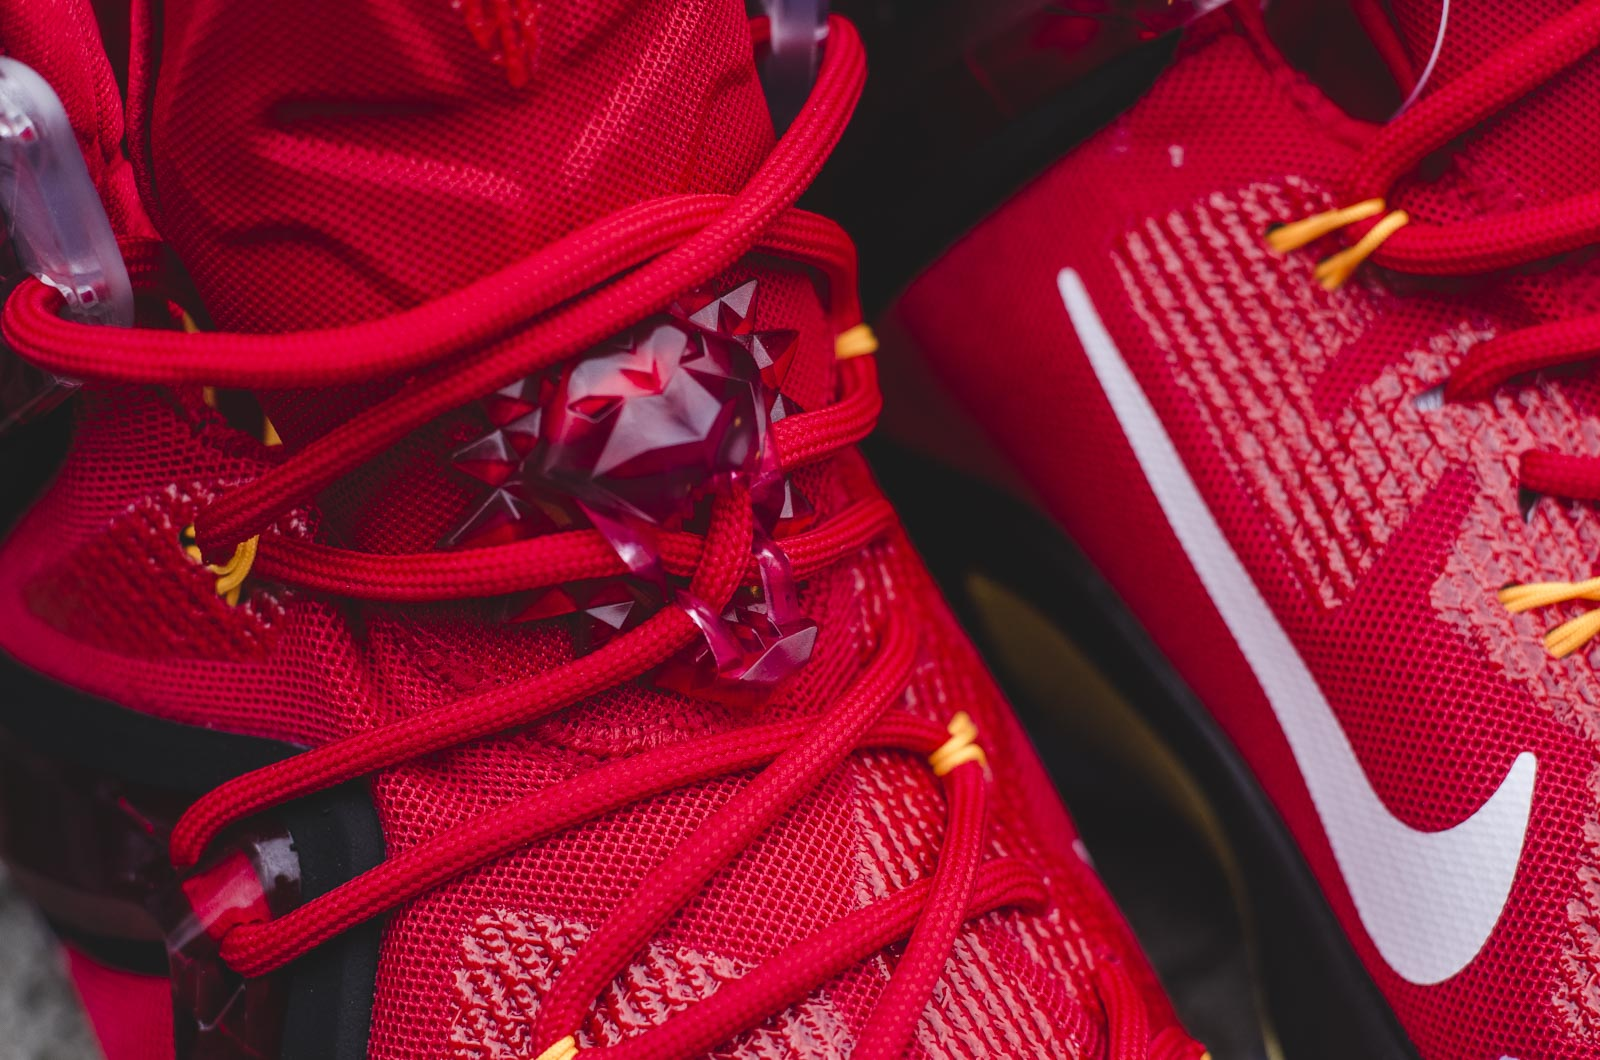 fe139e8350dc Direct insights from Kevin Durant and LeBron James have helped Nike  fundamentally evolve basketball shoes